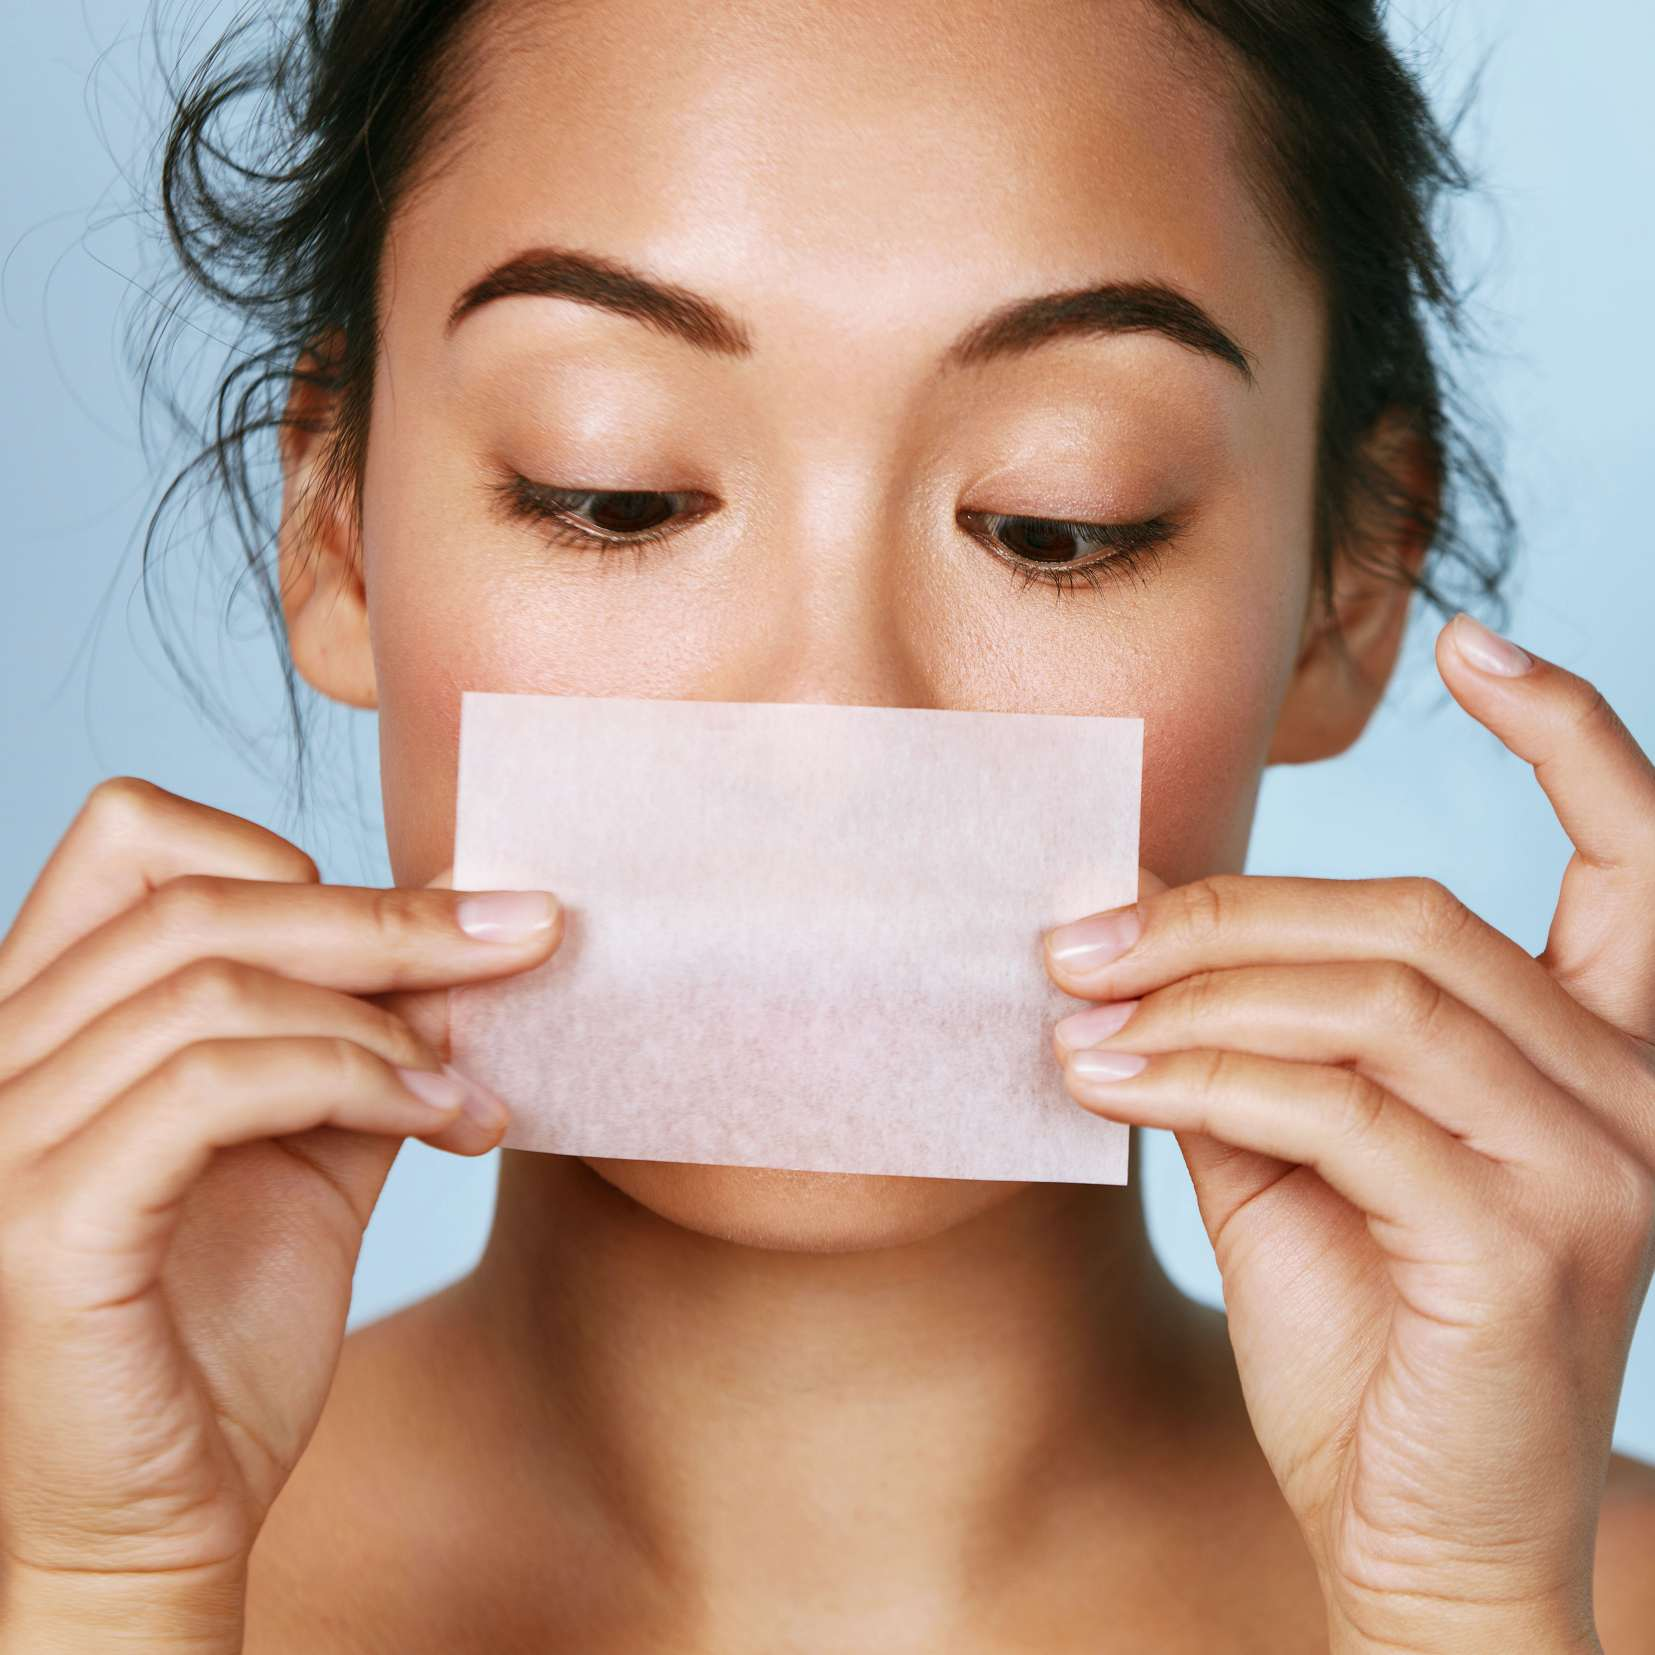 Still Have Oily Skin? Here's How To Finally Fix It